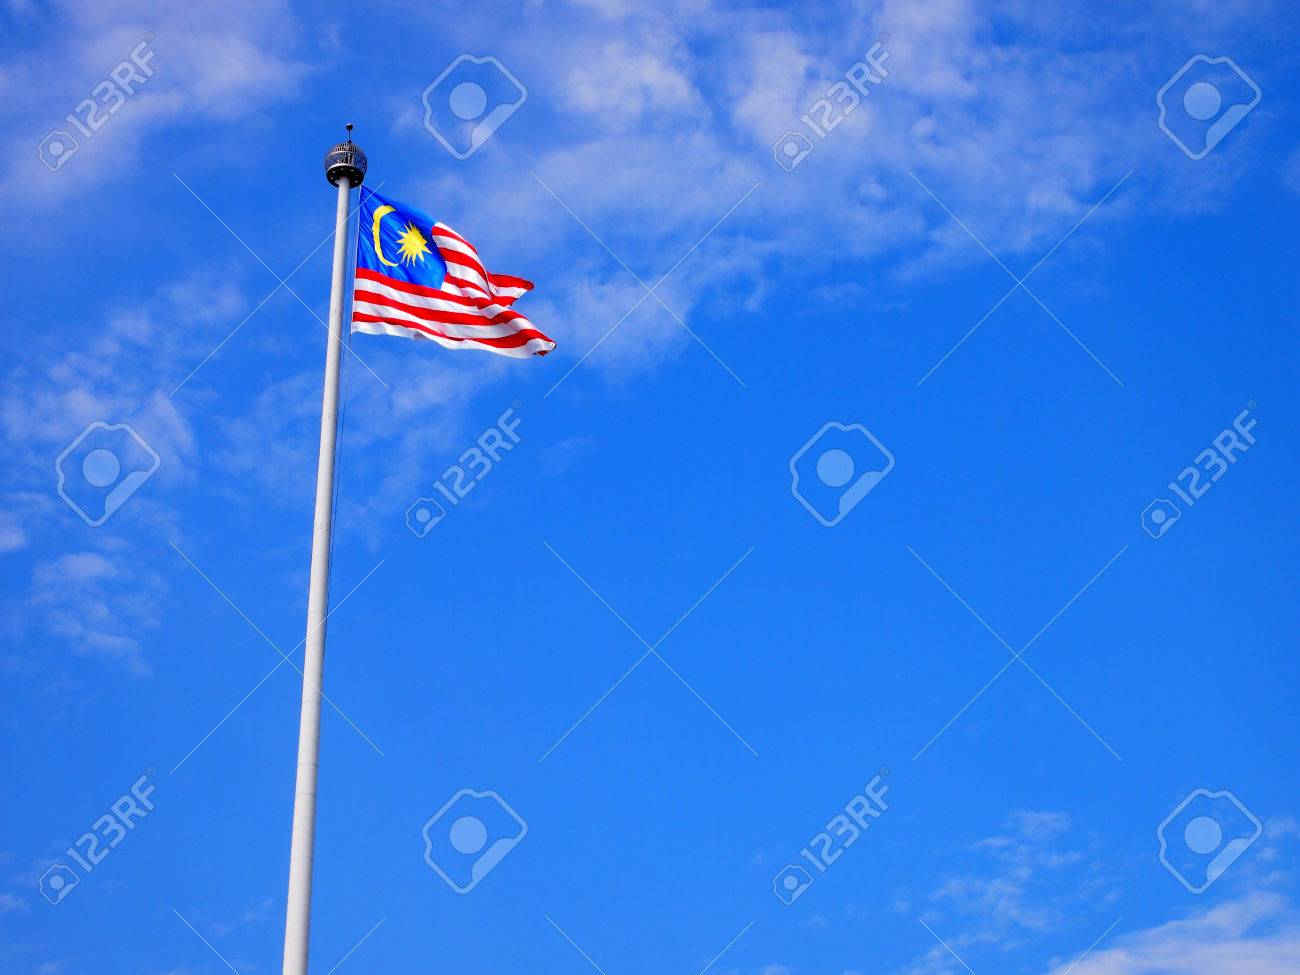 Malaysia flag waving on the wind with blue sky - 40886818